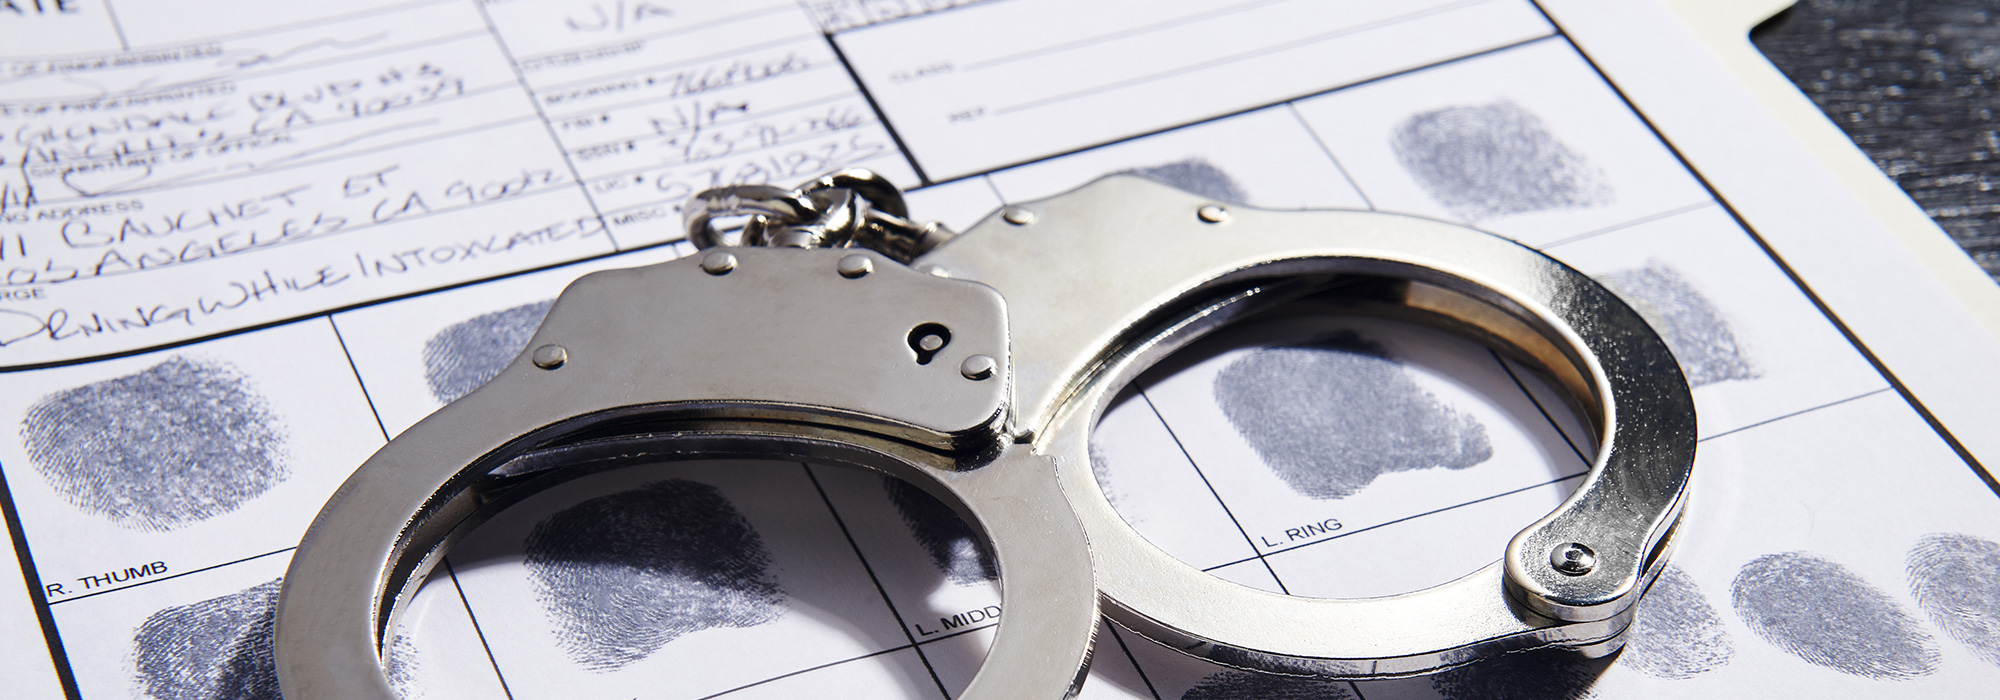 Handcuffs and background checks in San Jose, CA.